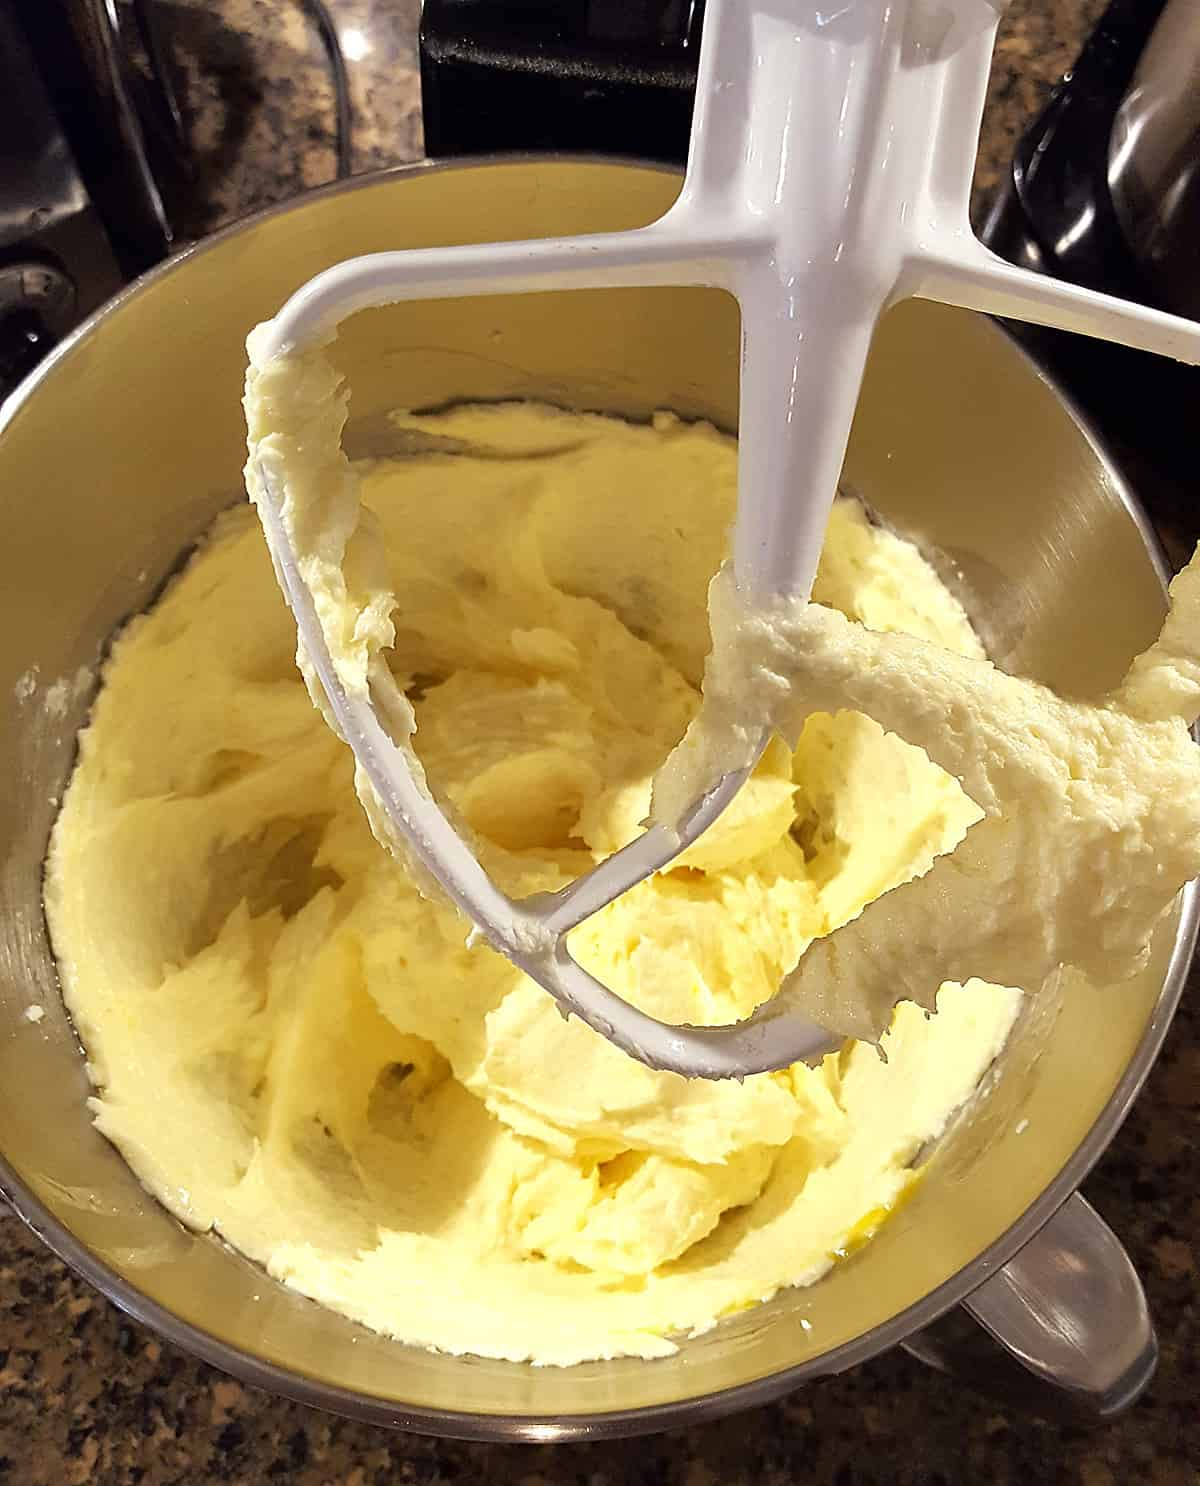 Mixing bowl with the butter, sugar, and egg mixture.